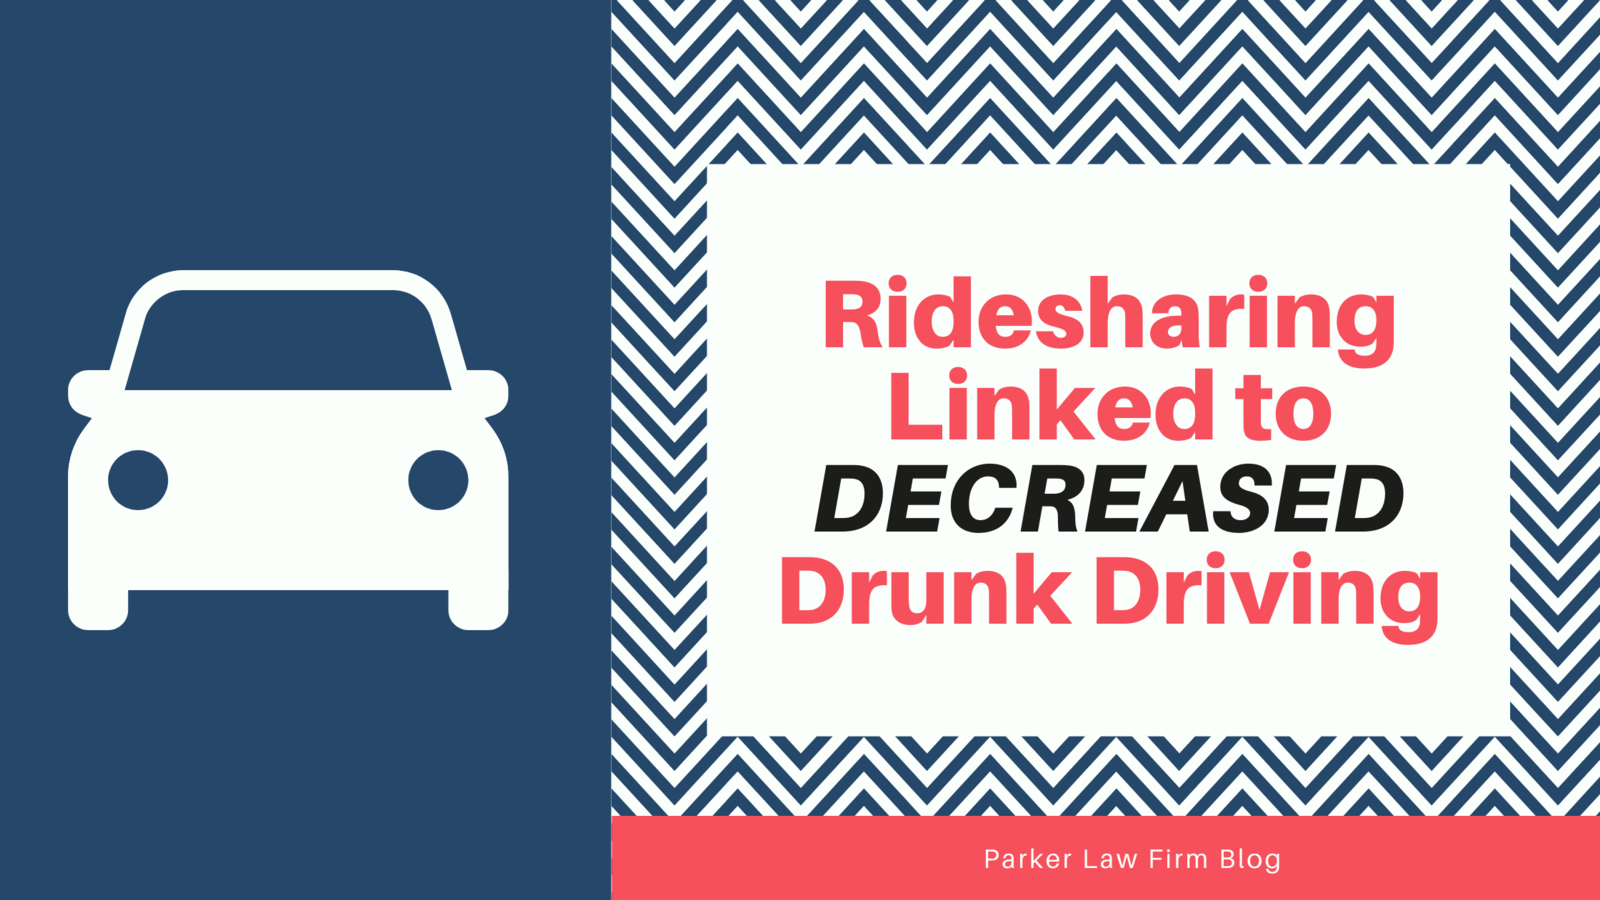 Ridesharing Linked to Decreased Drunk Driving Parker Law Firm